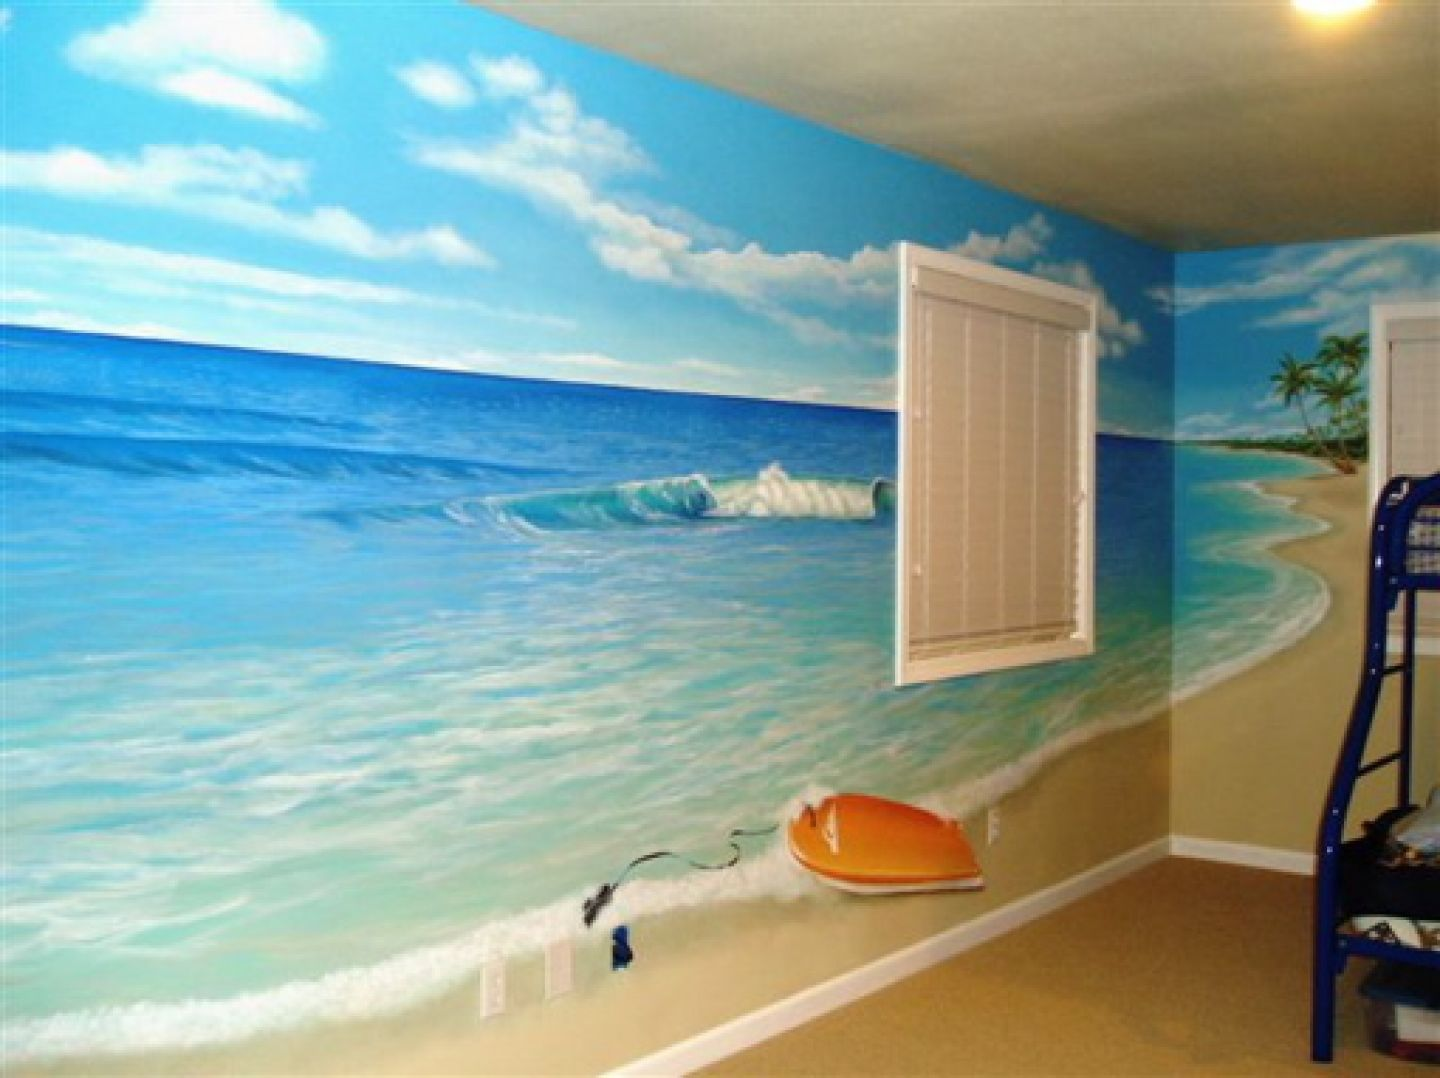 beach mural ideas to paint on divider wall tags beach beach bathroom themes beach bedroom - Ideas For Bedroom Decorating Themes